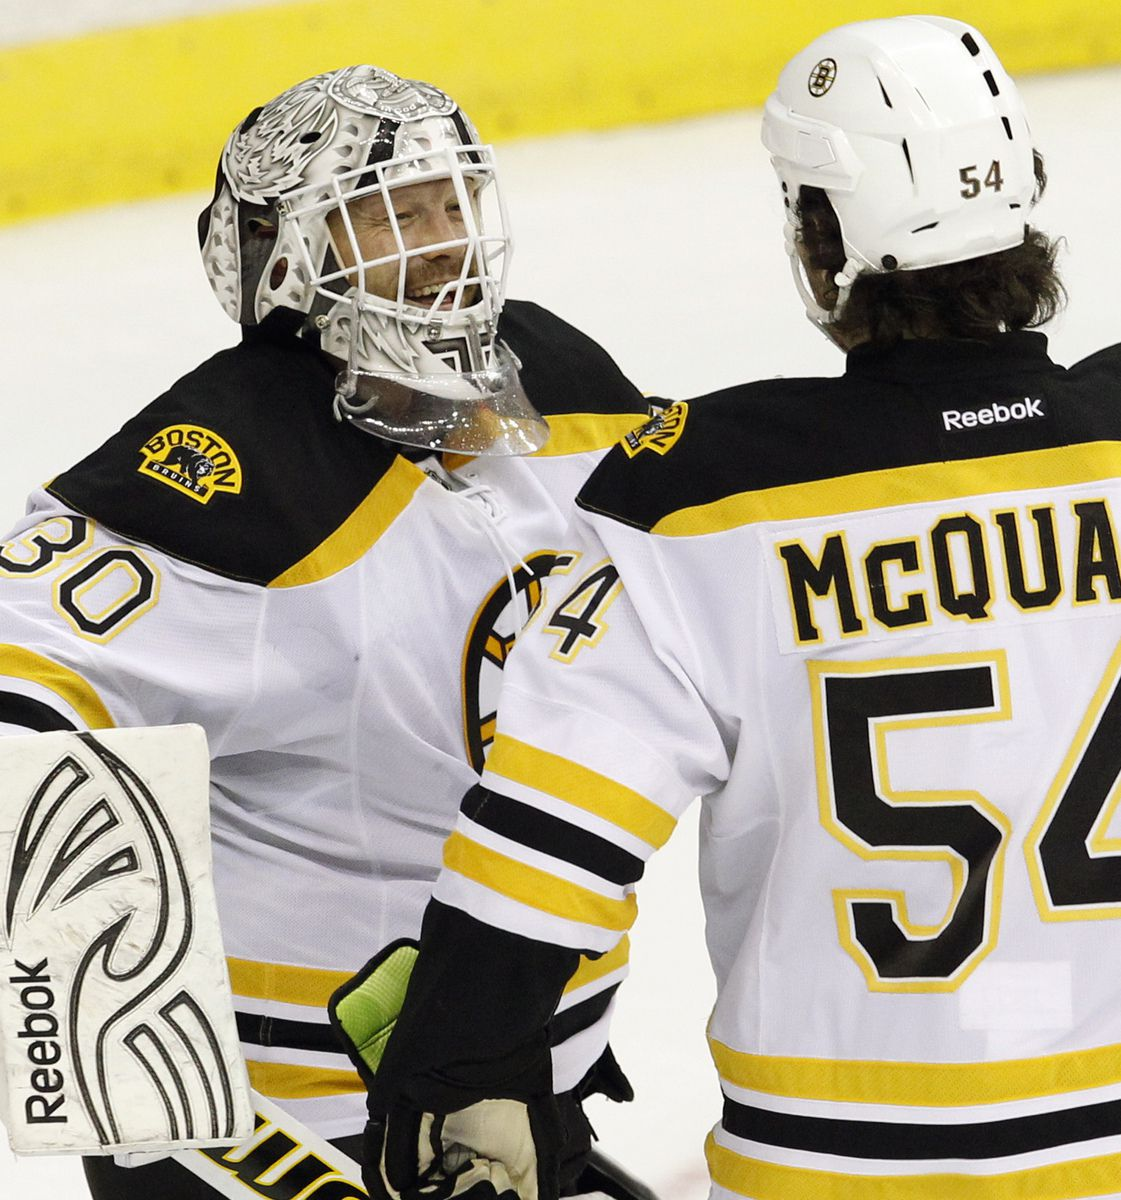 Bruins' defensive approach paying off - The Boston Globe